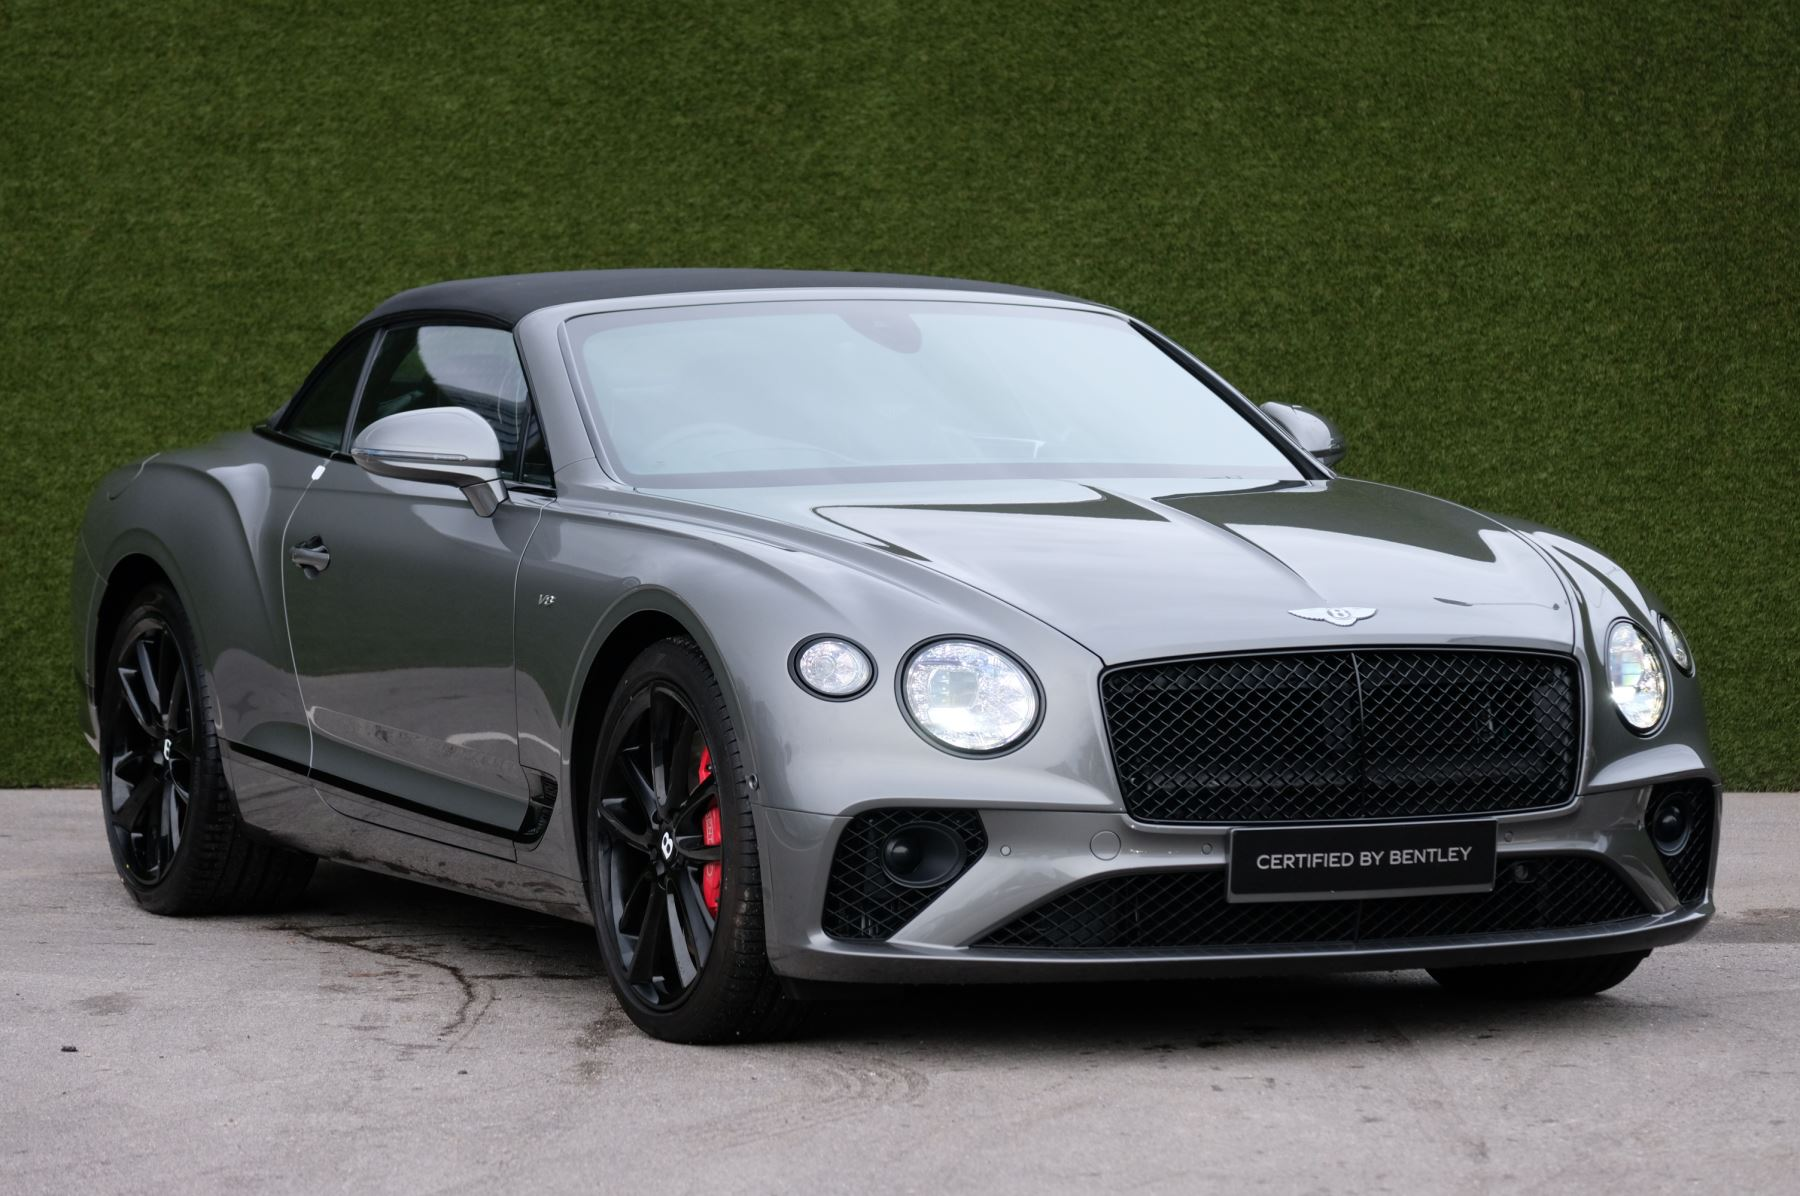 Bentley Continental GTC 4.0 V8 Mulliner Driving Spec Auto Automatic 2 door Convertible (2020)